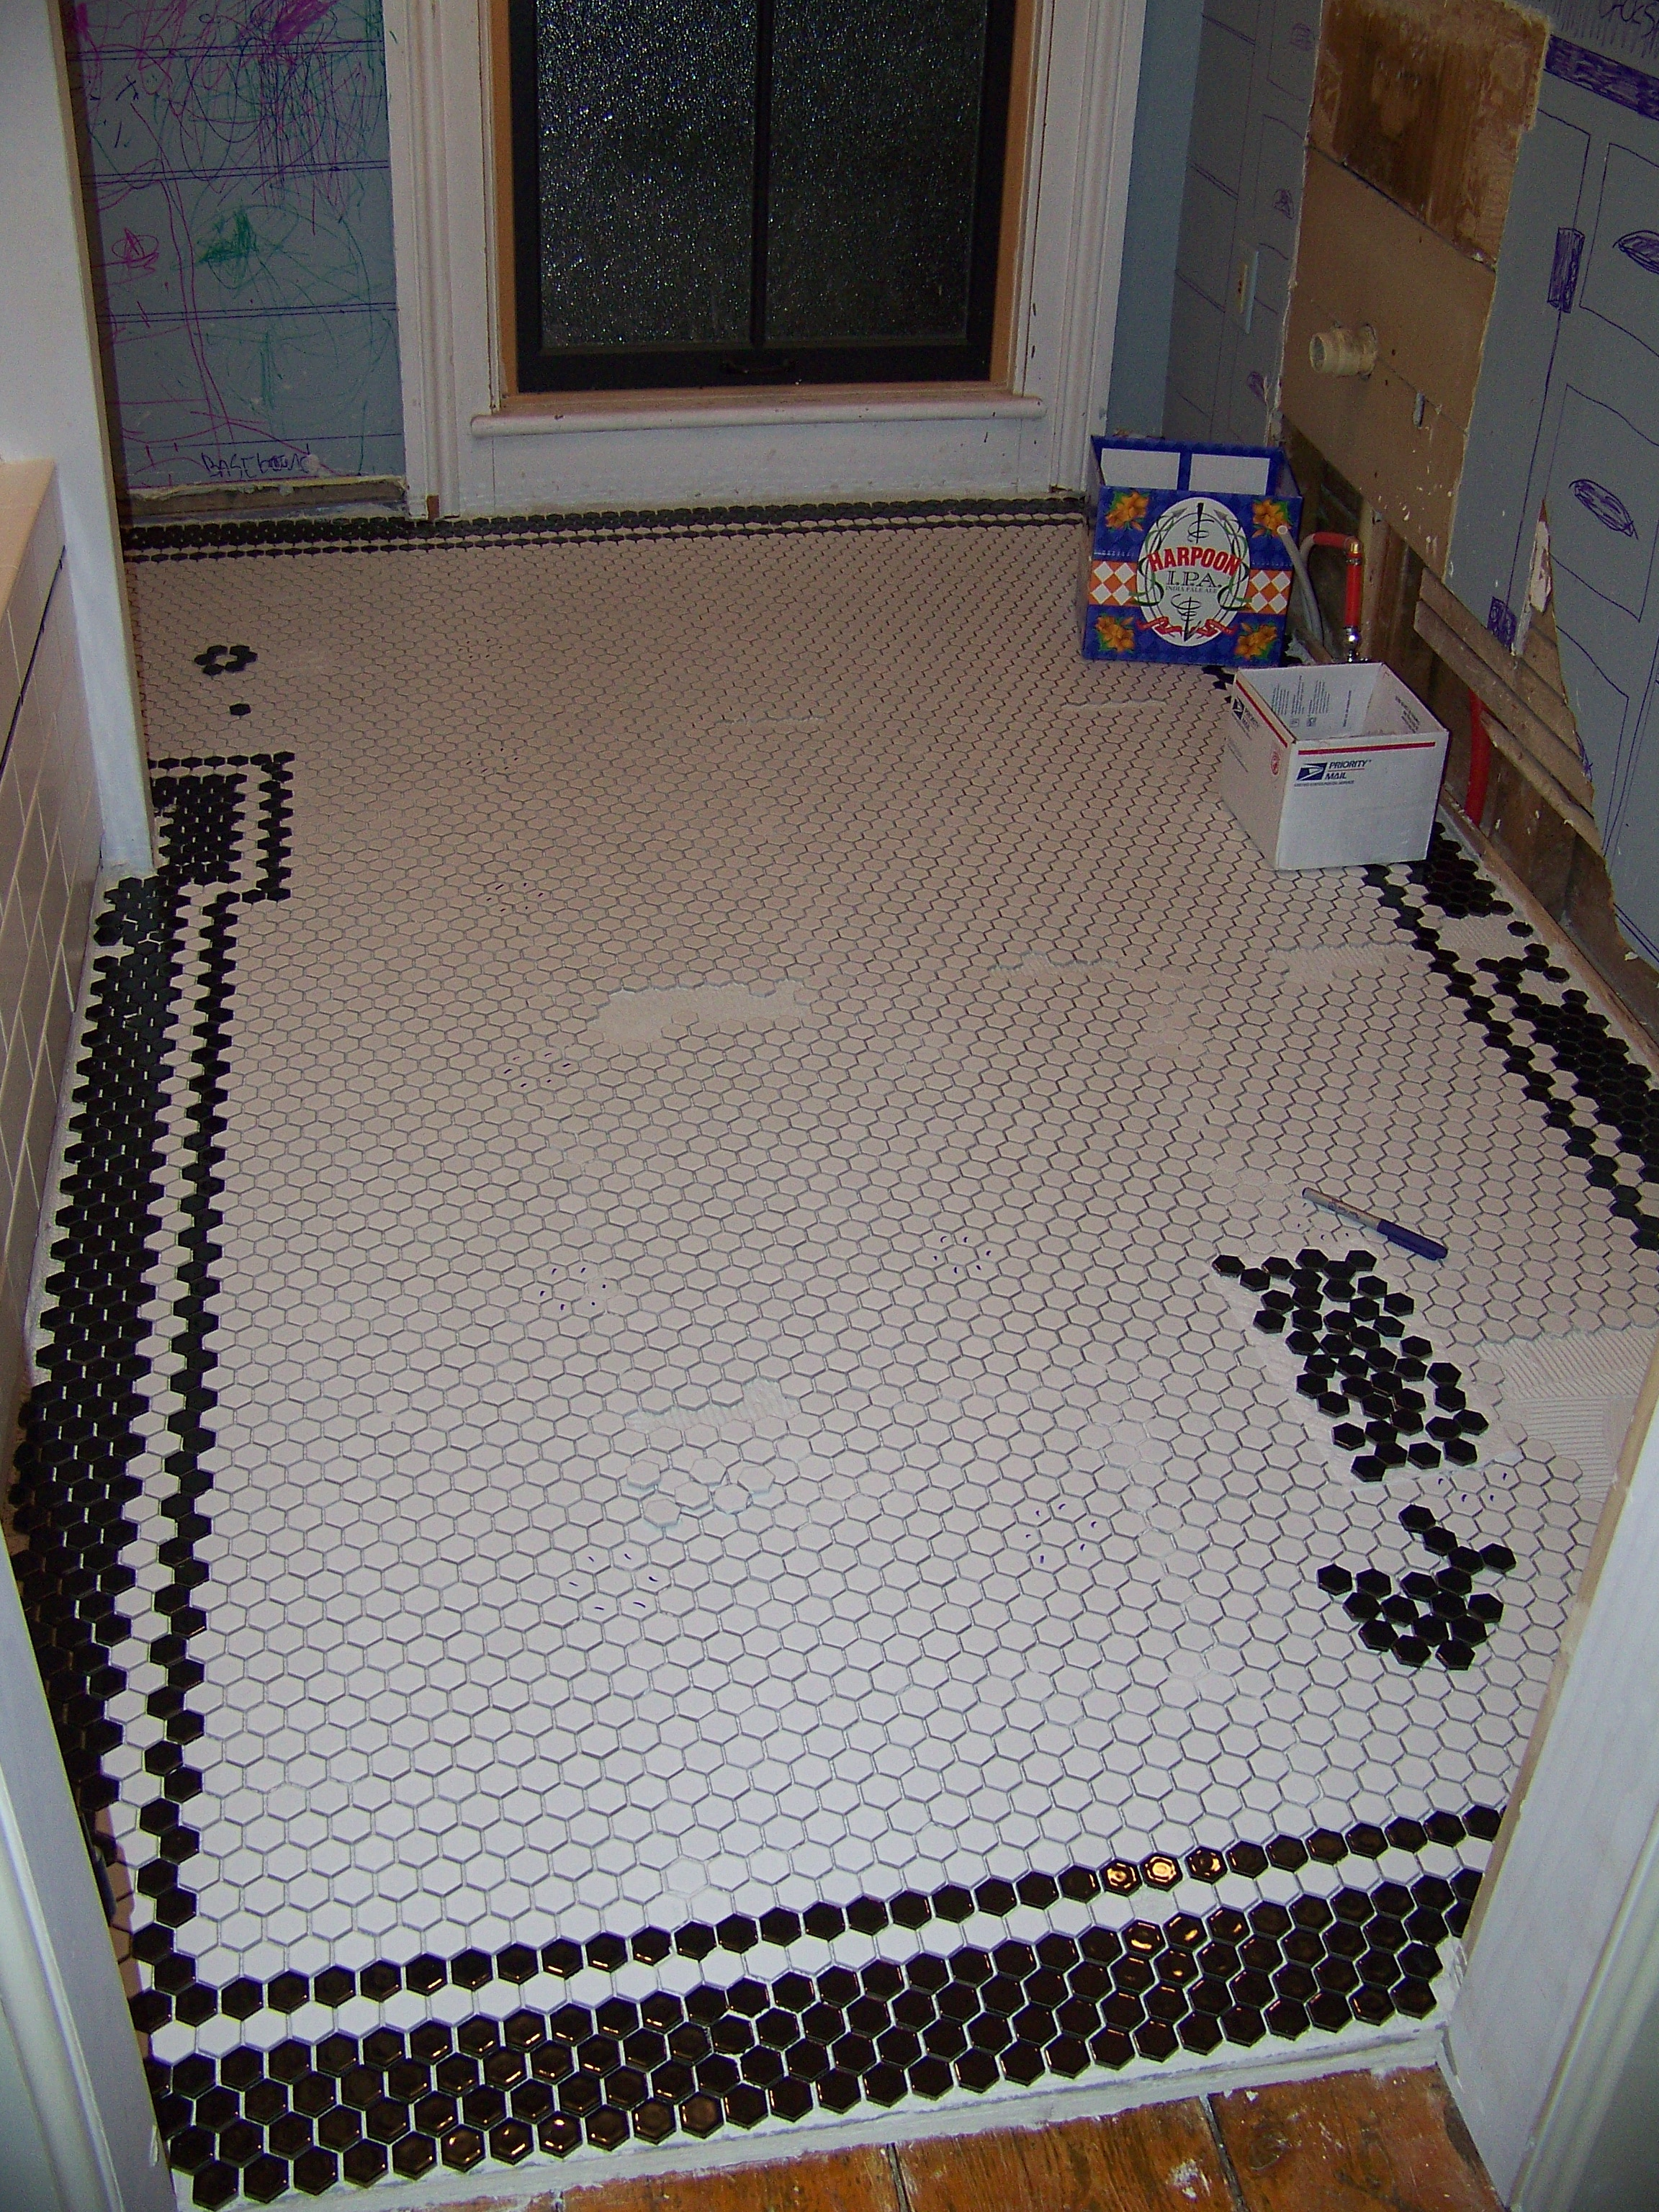 Tile job gone amok interior decorating interior redesign tile job gone amok dailygadgetfo Images